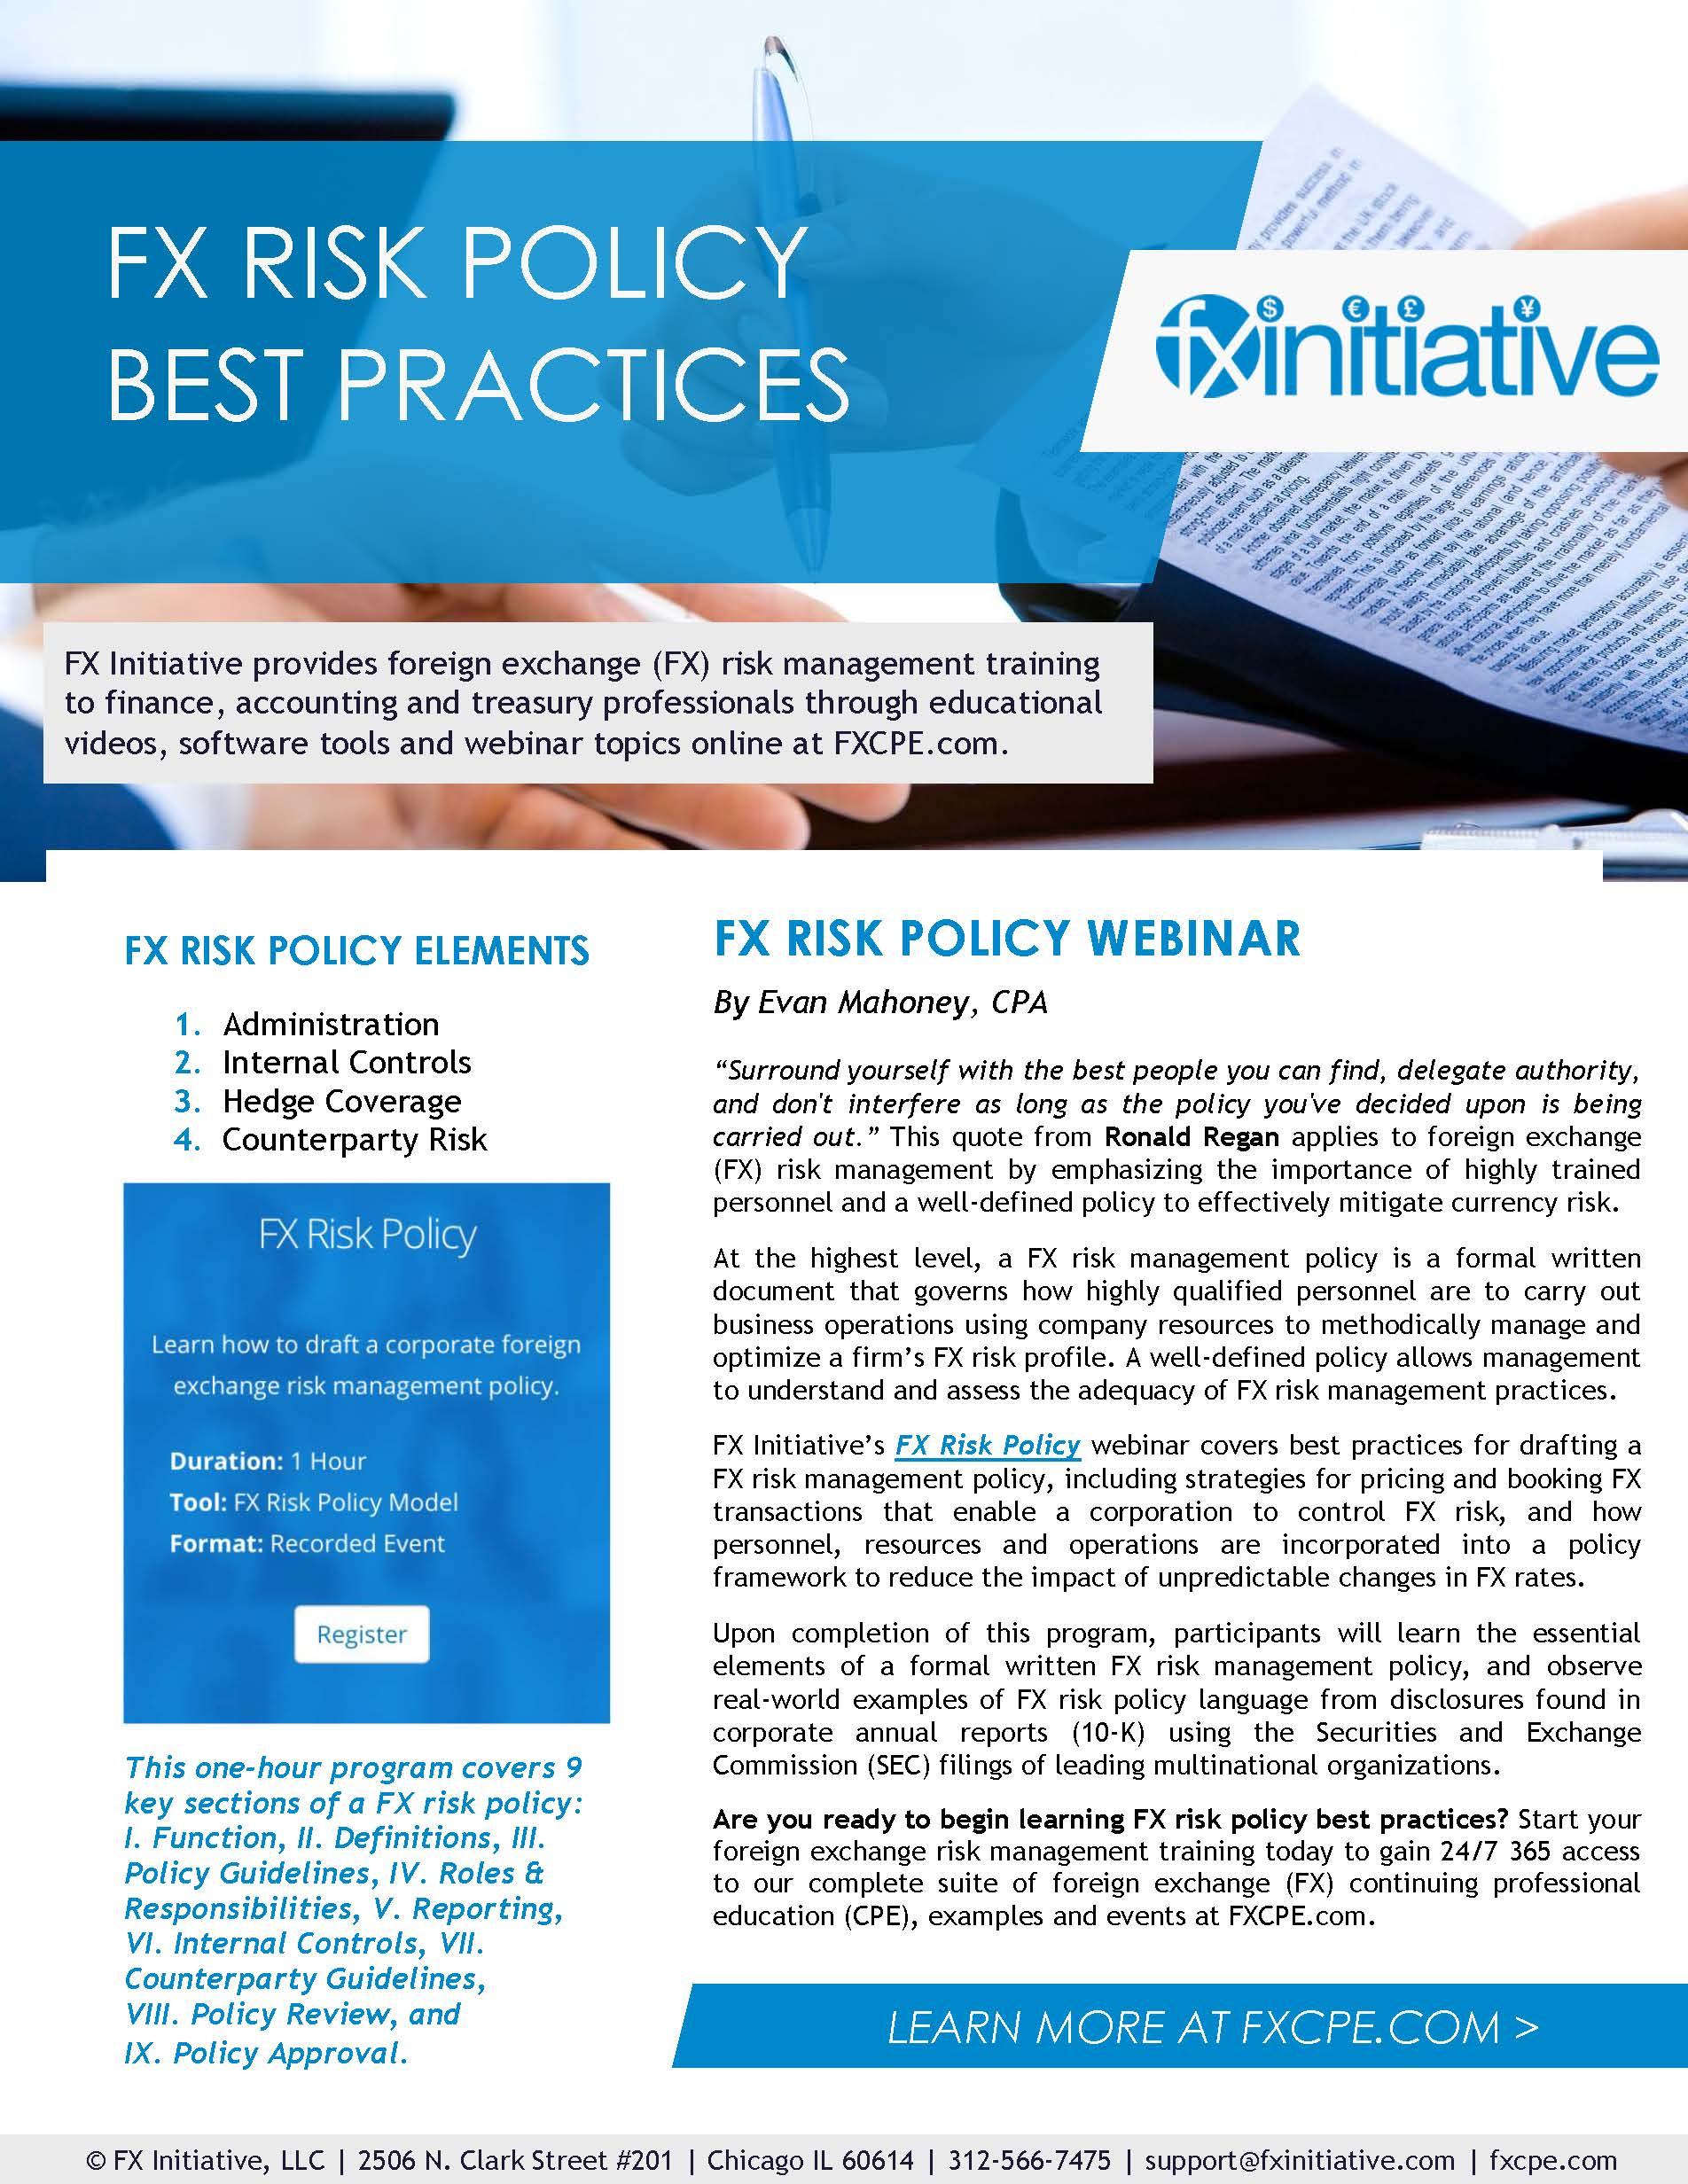 FX Initiative Blog | FX Risk Policy Best Practices